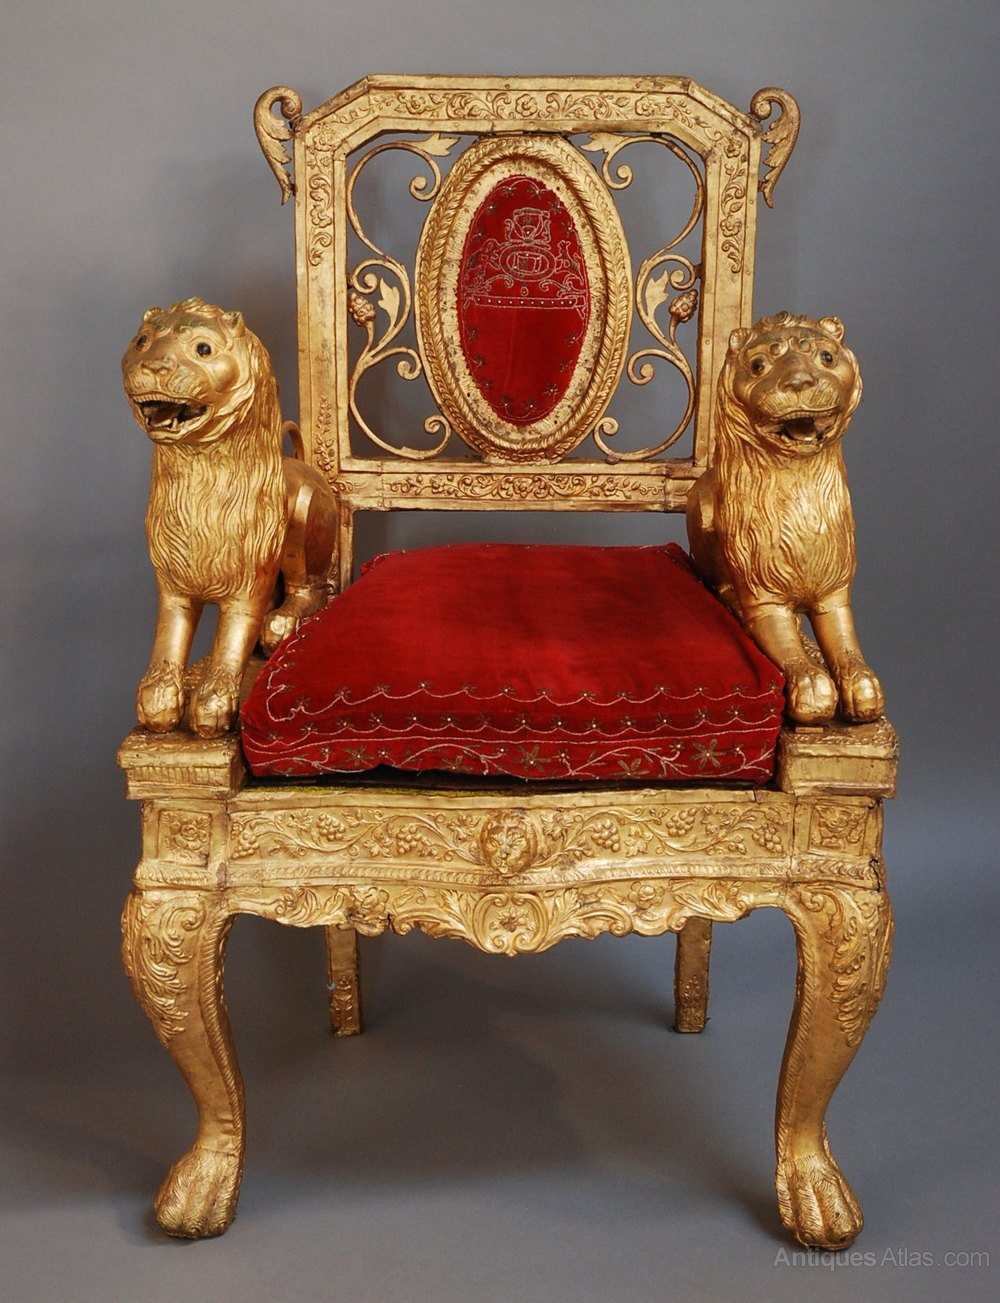 Mid/late 19th century Indian throne chair Antique ... - Mid/late 19th Century Indian Throne Chair - Antiques Atlas